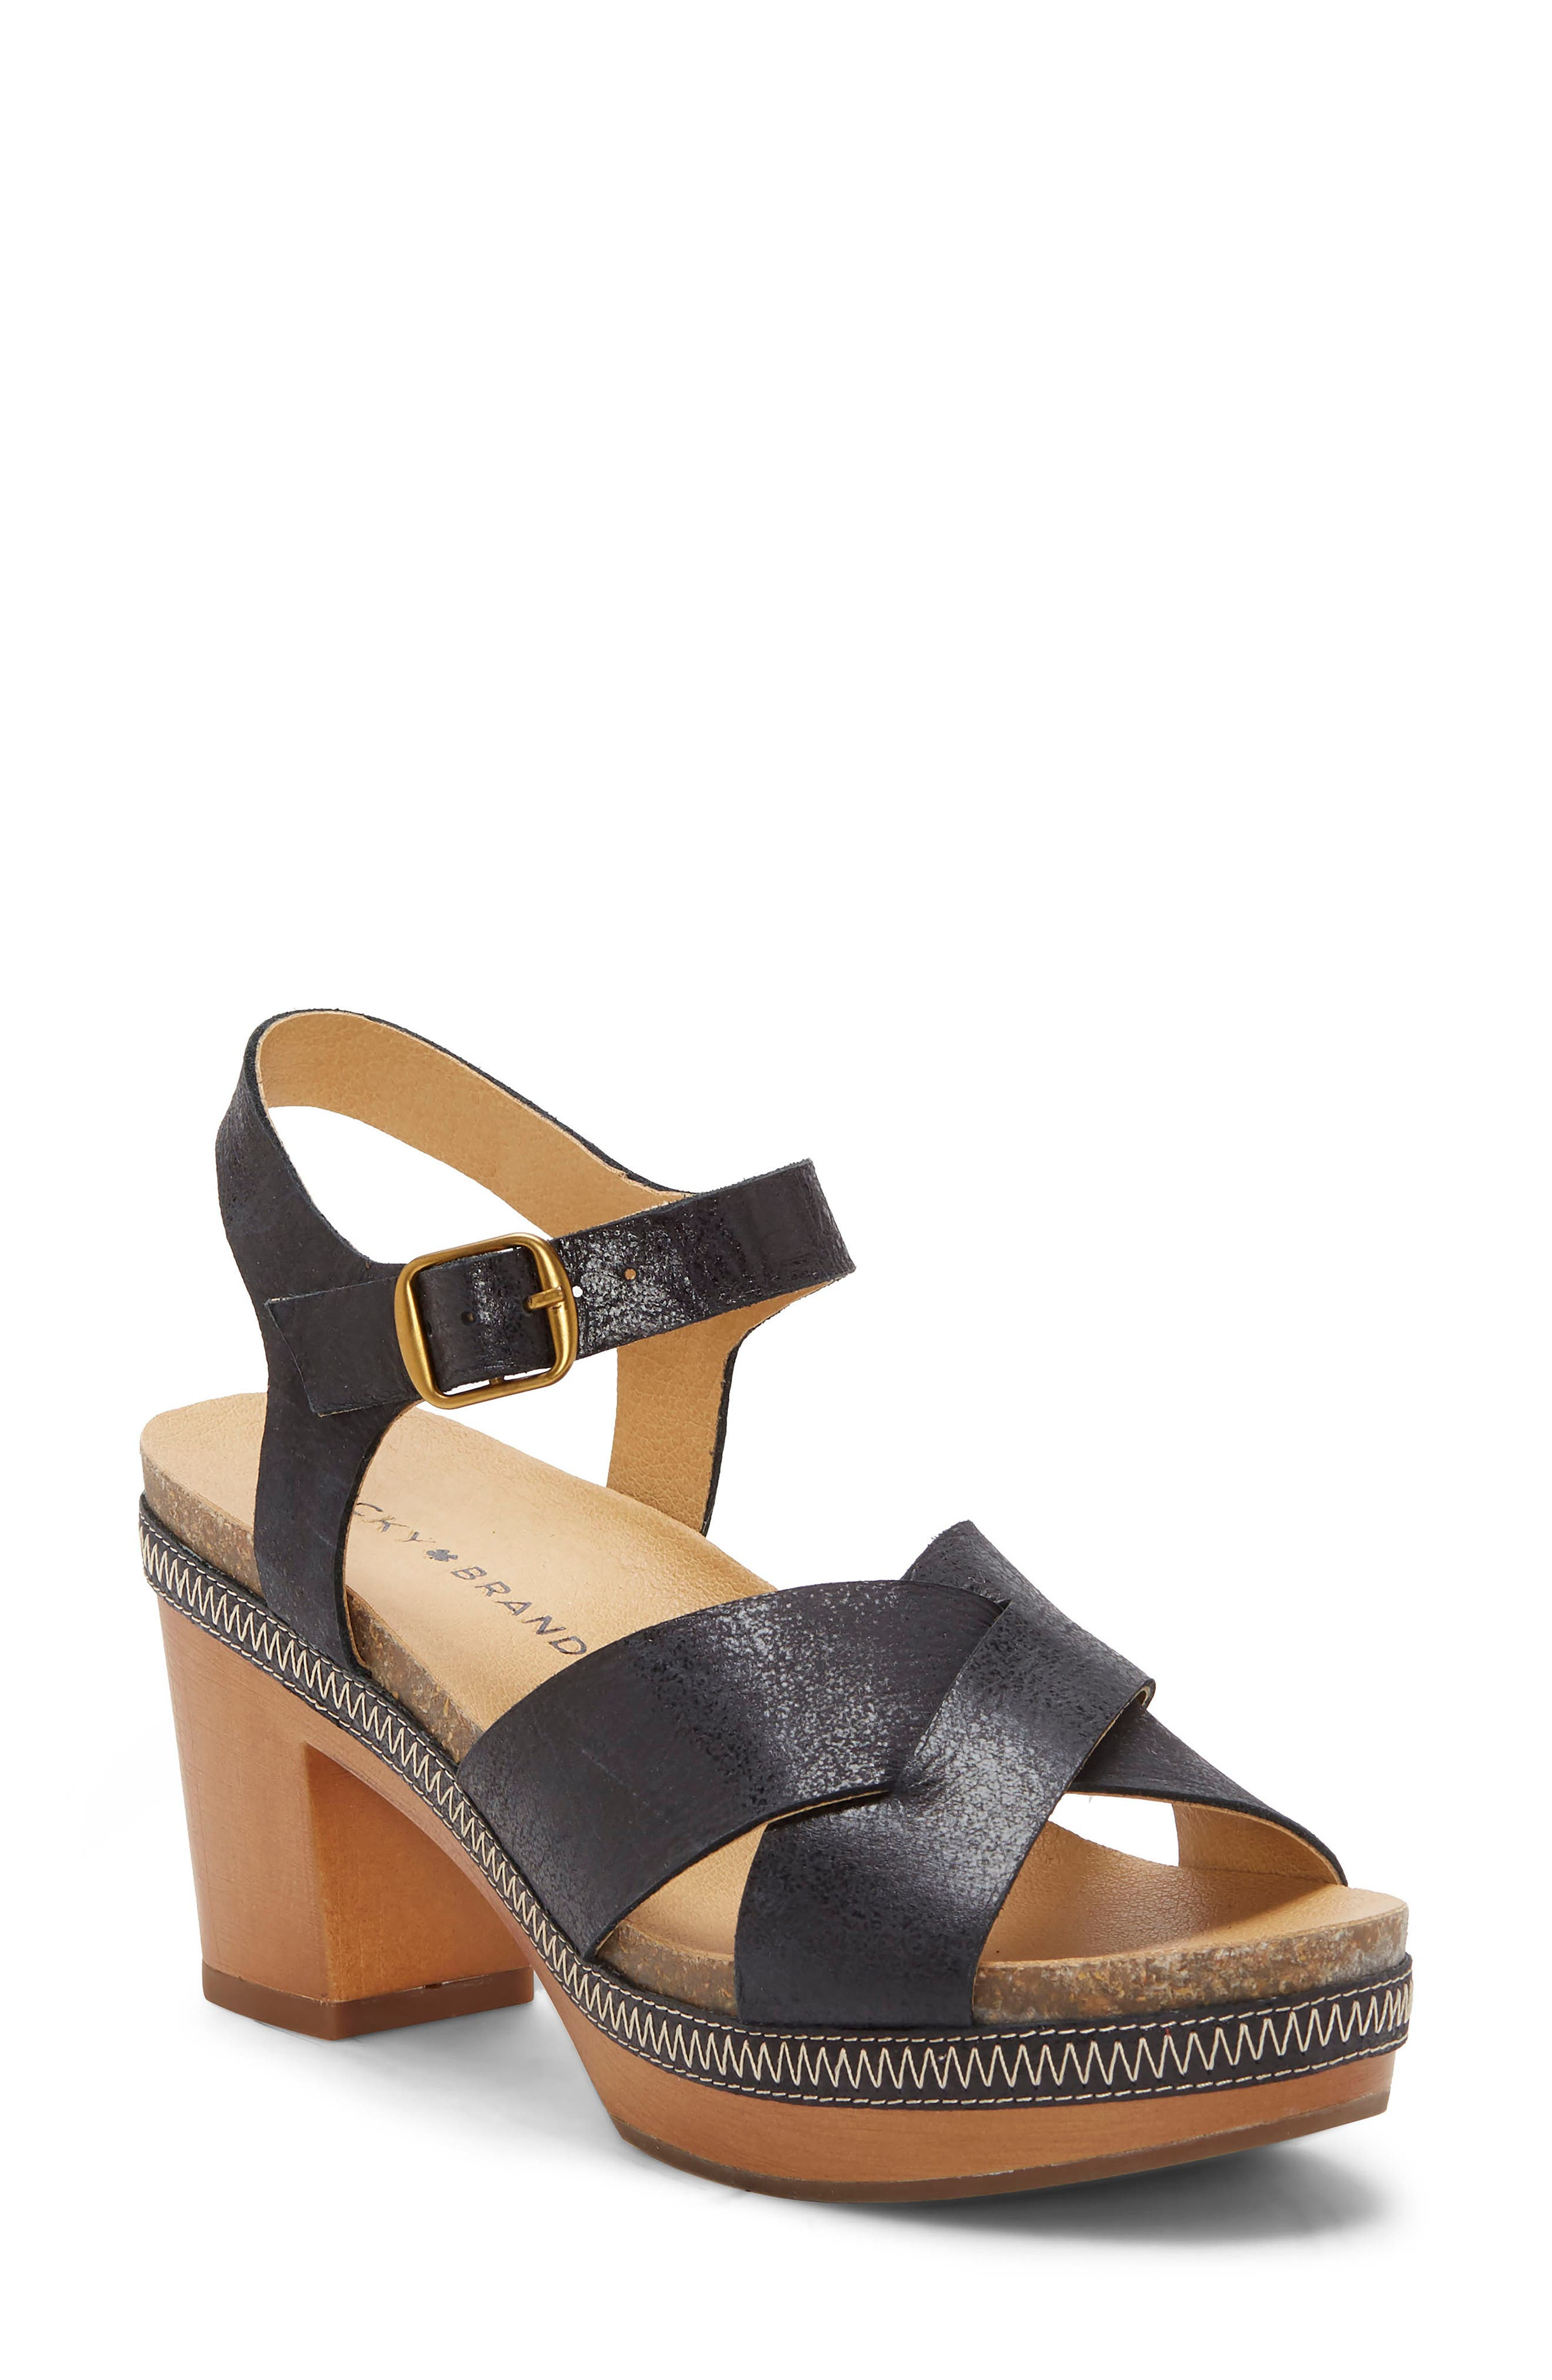 A chunky woodgrain platform and heel bring old-school style to a breezy sandal with contrast stitching detailing the midsole. Style Name: Lucky Brand Harvia Platform Sandal (Women). Style Number: 5958397. Available in stores.